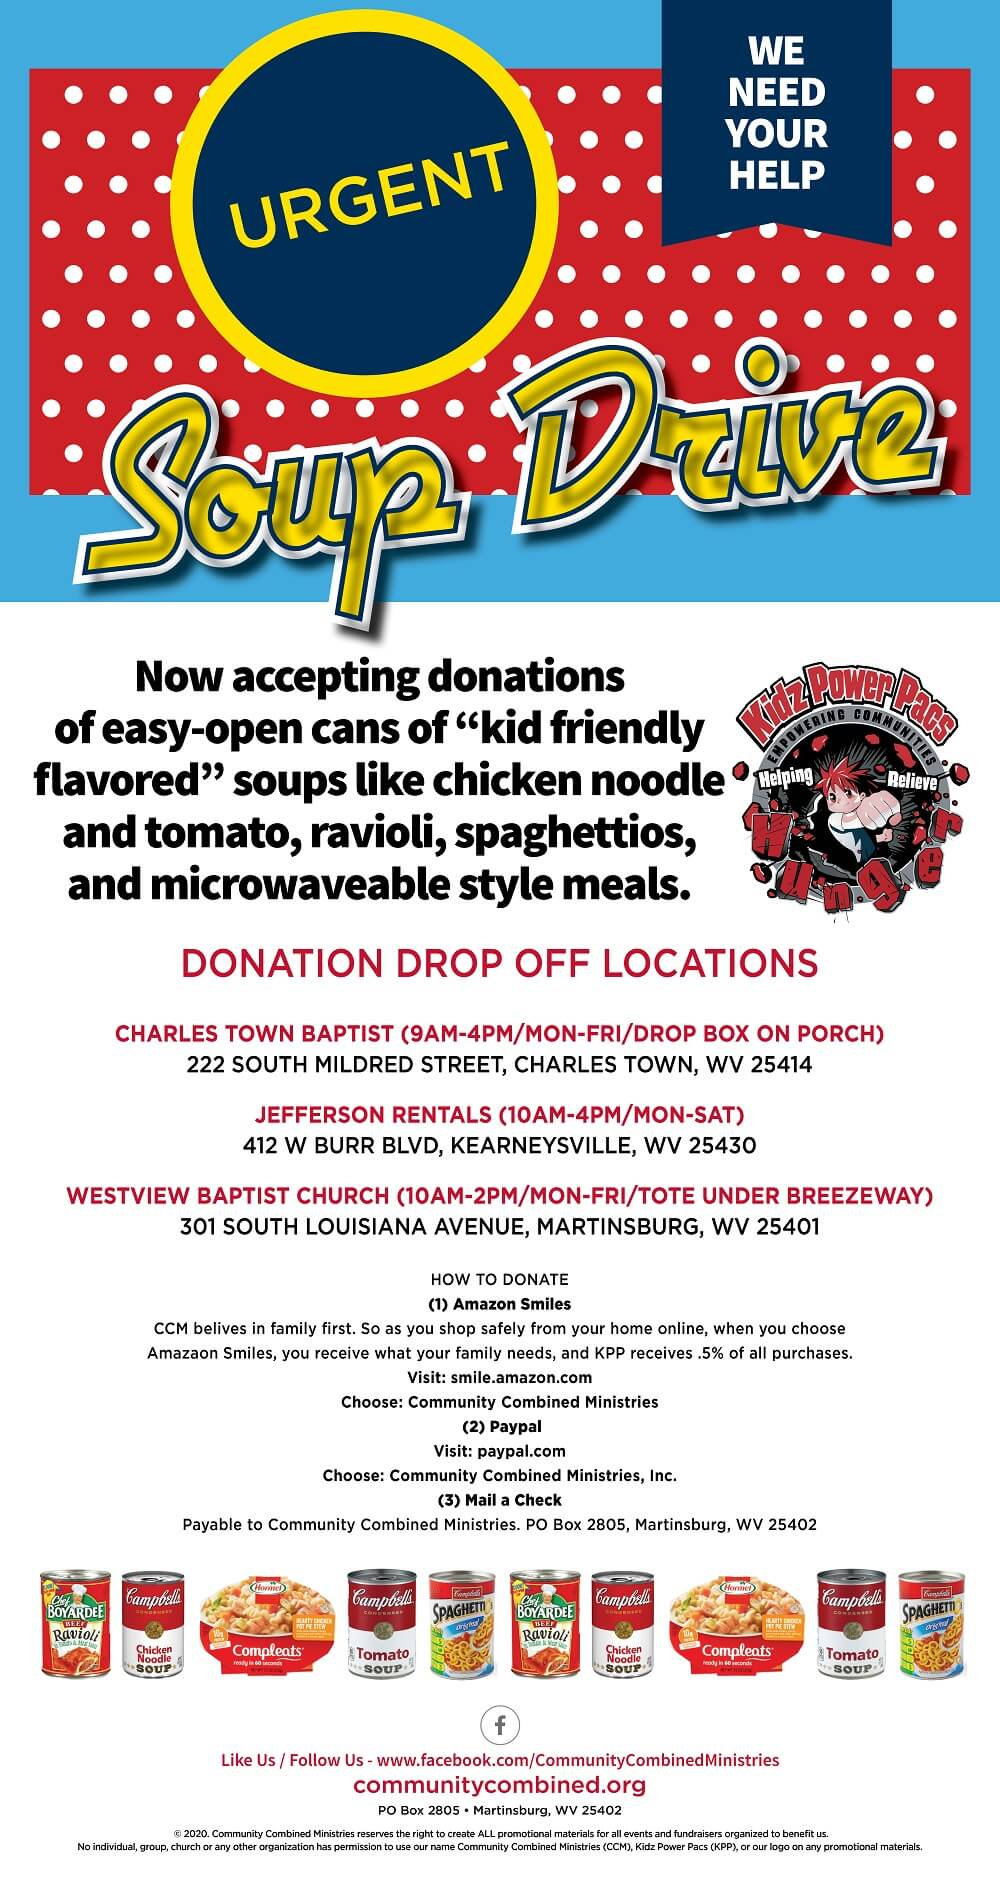 KPP soup drive now accepting e z open cans of kid friendly flavored soup